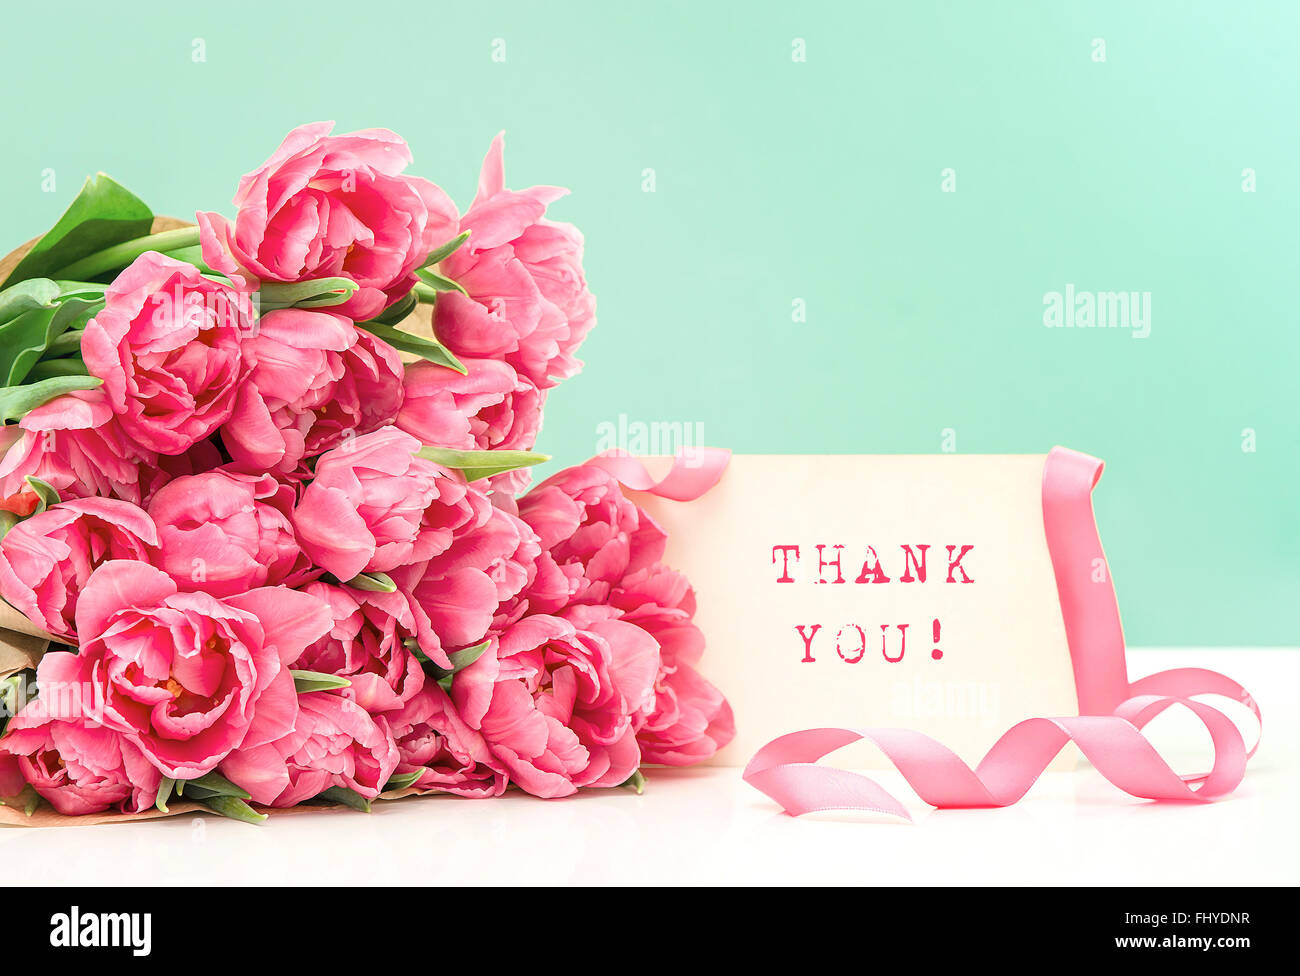 Pink tulips and card sample text thank you postcard concept pink tulips and card sample text thank you postcard concept picture with oil painting effect altavistaventures Image collections